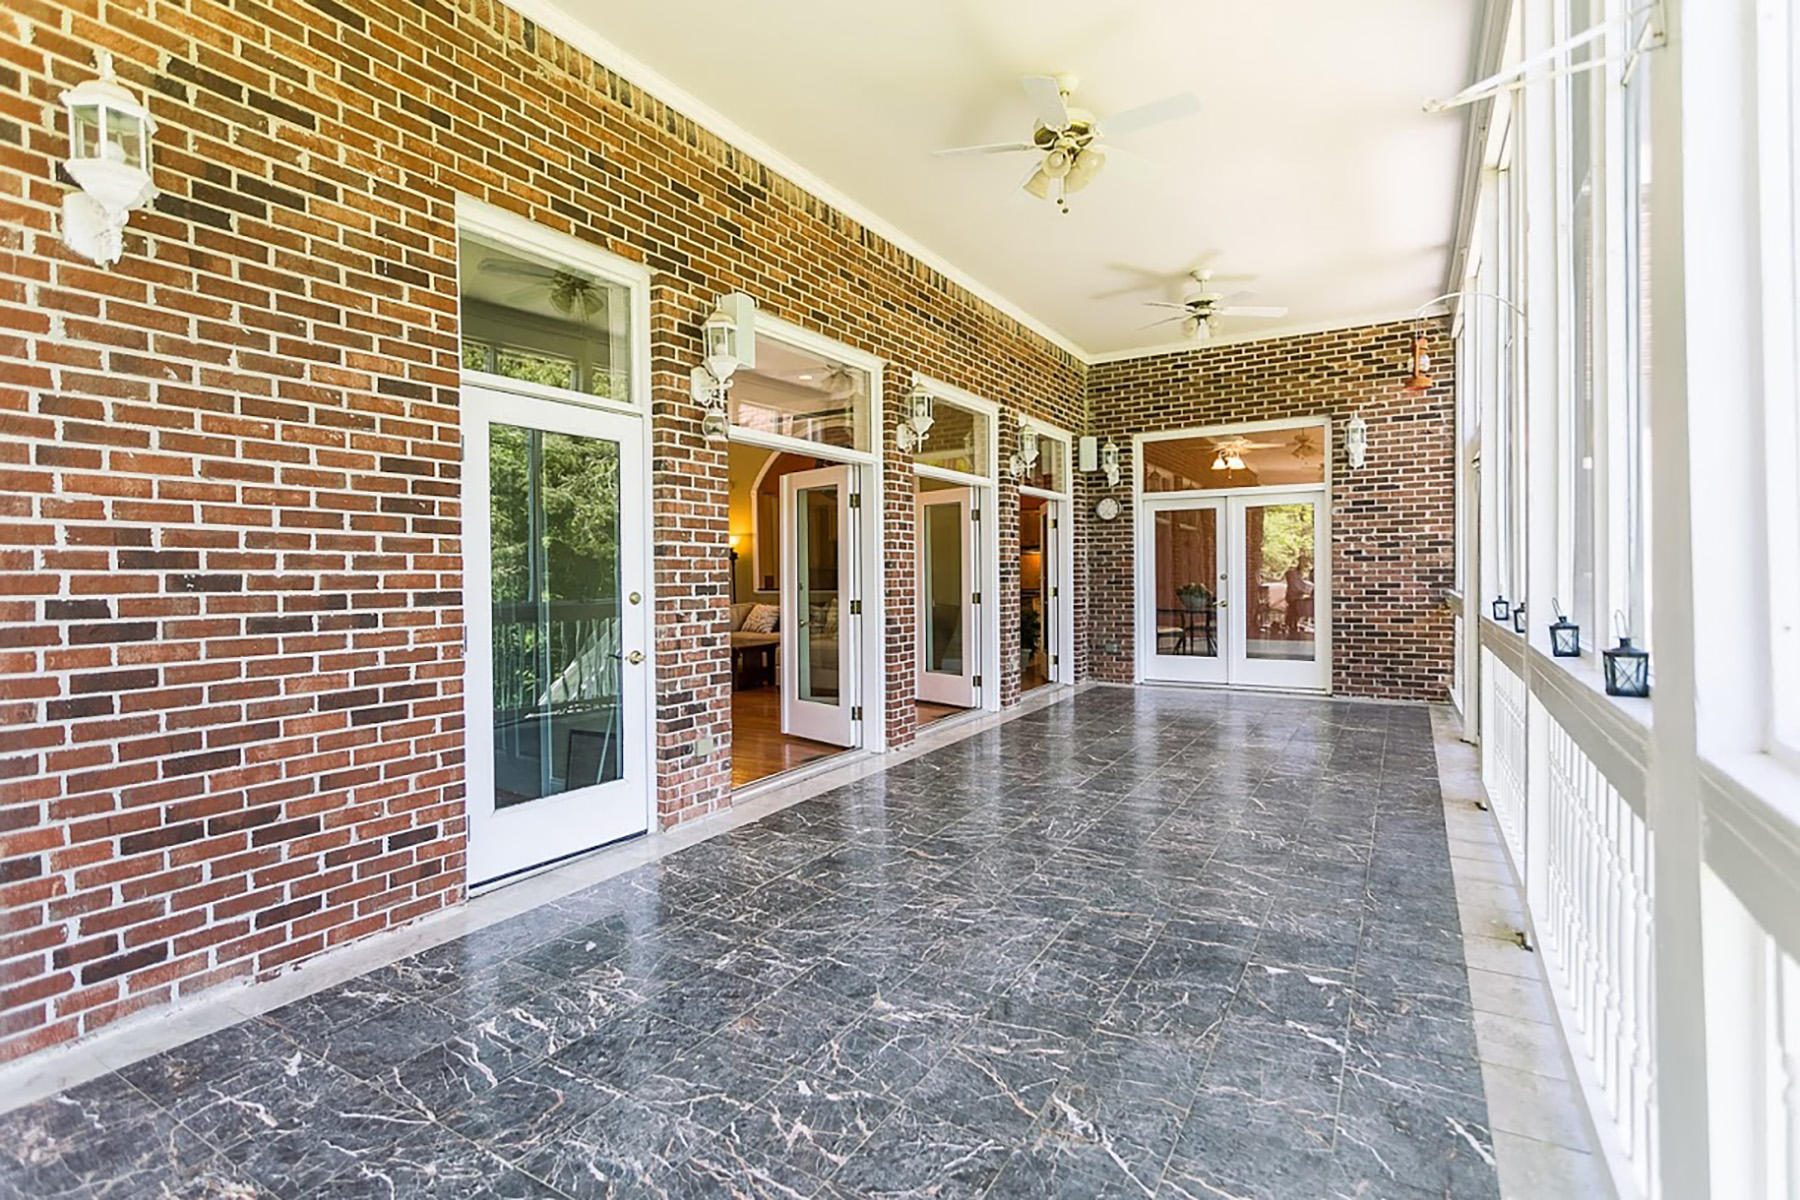 Additional photo for property listing at A Rare Find In Ringold Just Minutes From Historic Chattanooga 876 Keith Salem Road Ringgold, ジョージア 30736 アメリカ合衆国